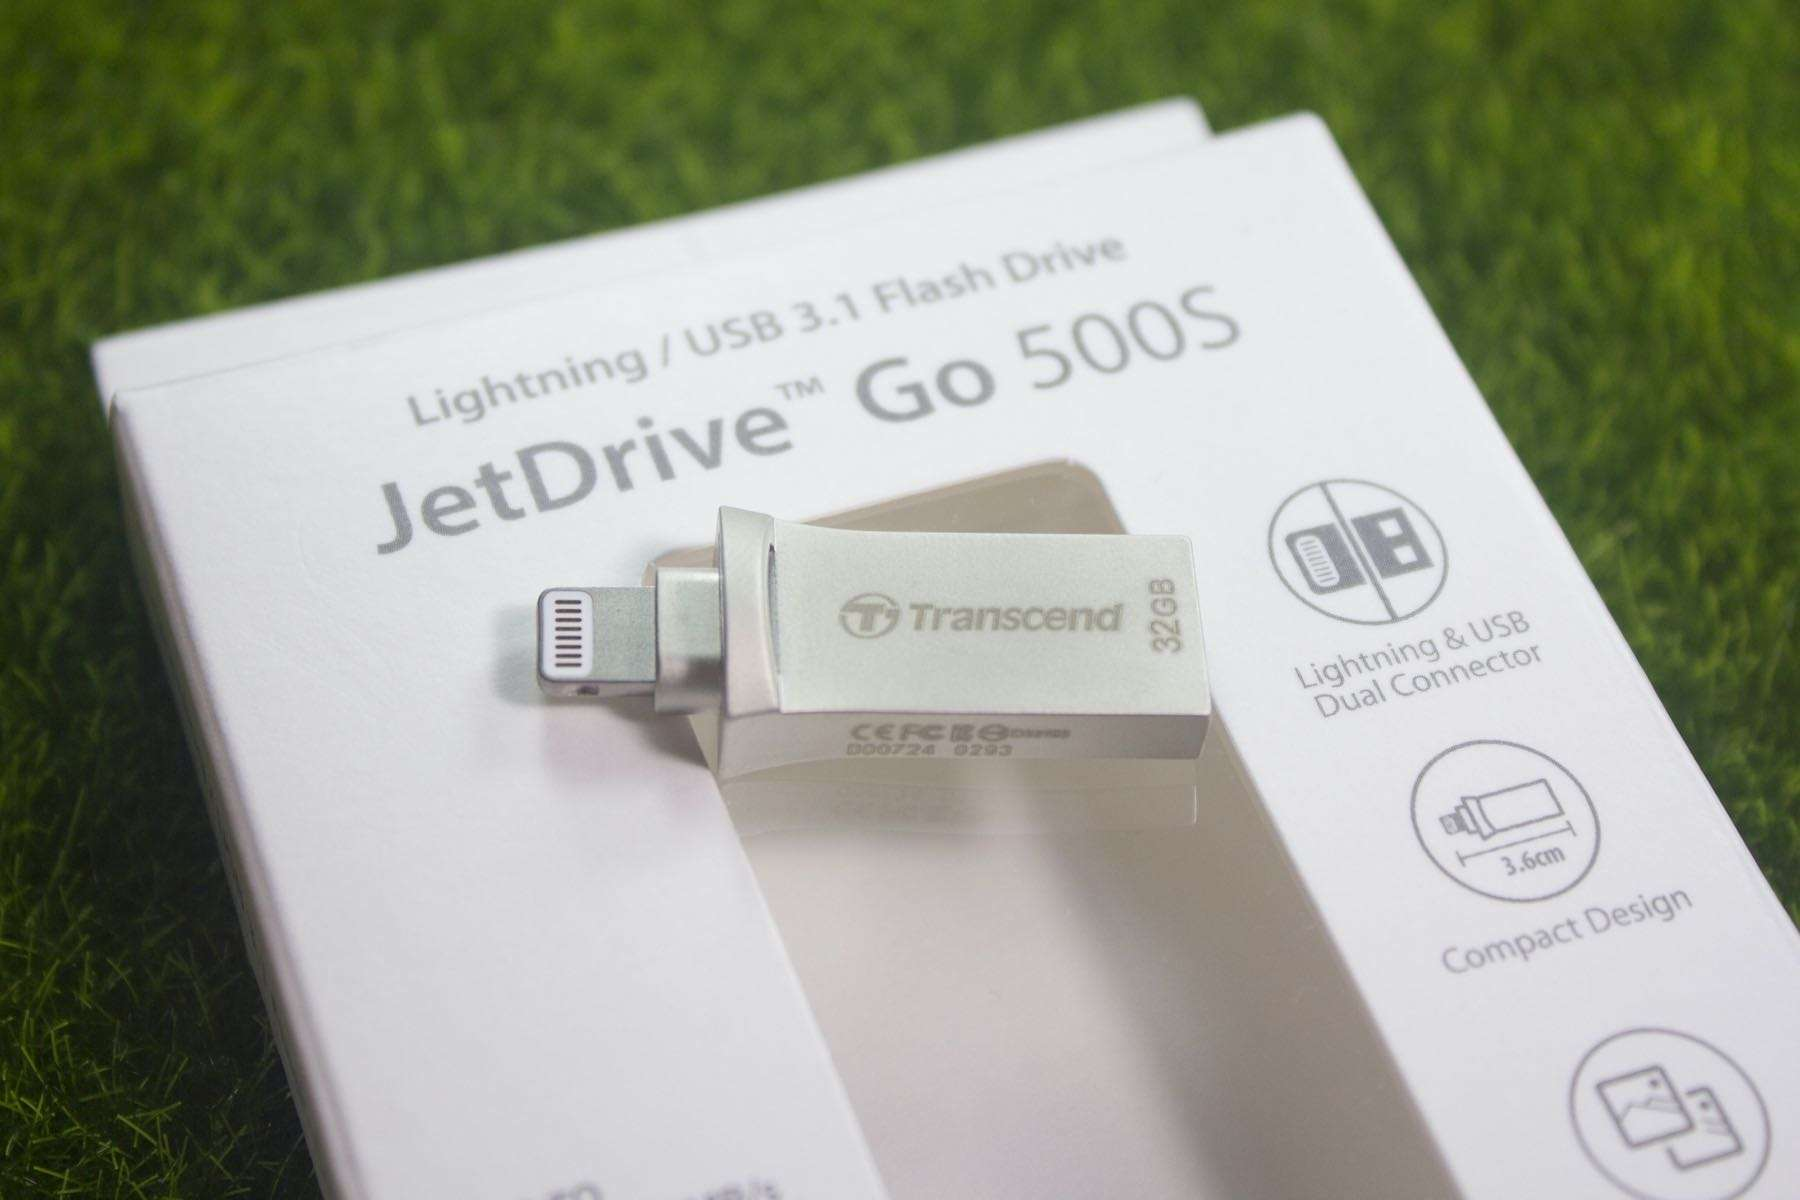 Transcend JetDrive Go 500S iPhone iPad iPod Touch Drive Flash Review